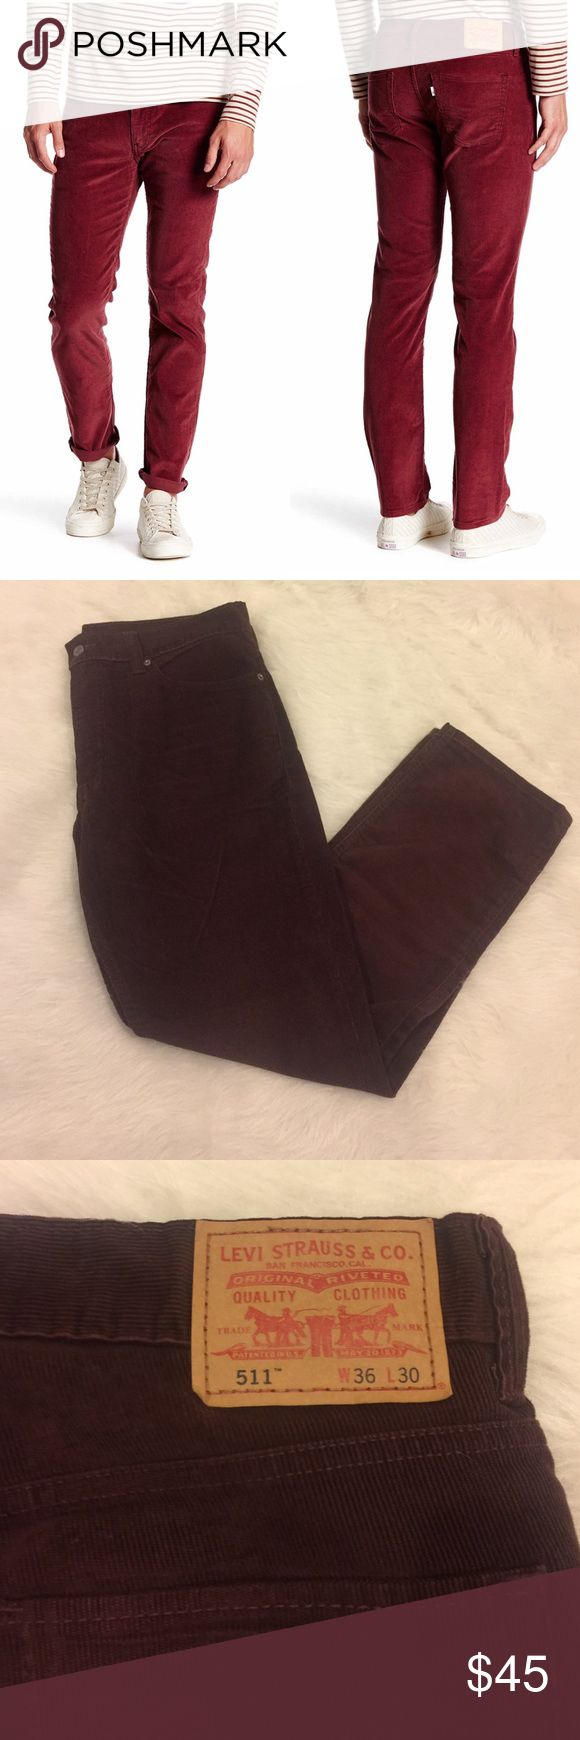 [Levi's] •Men's Corduroy 511 Pants• Only worn once, in great condition. Not the same color at the stock photo these are more of a deep maroon/almost brown color. Very soft! Waist: 36/Length: 30. 67% Cotton / 33% Polyester. Levi's Pants Corduroy